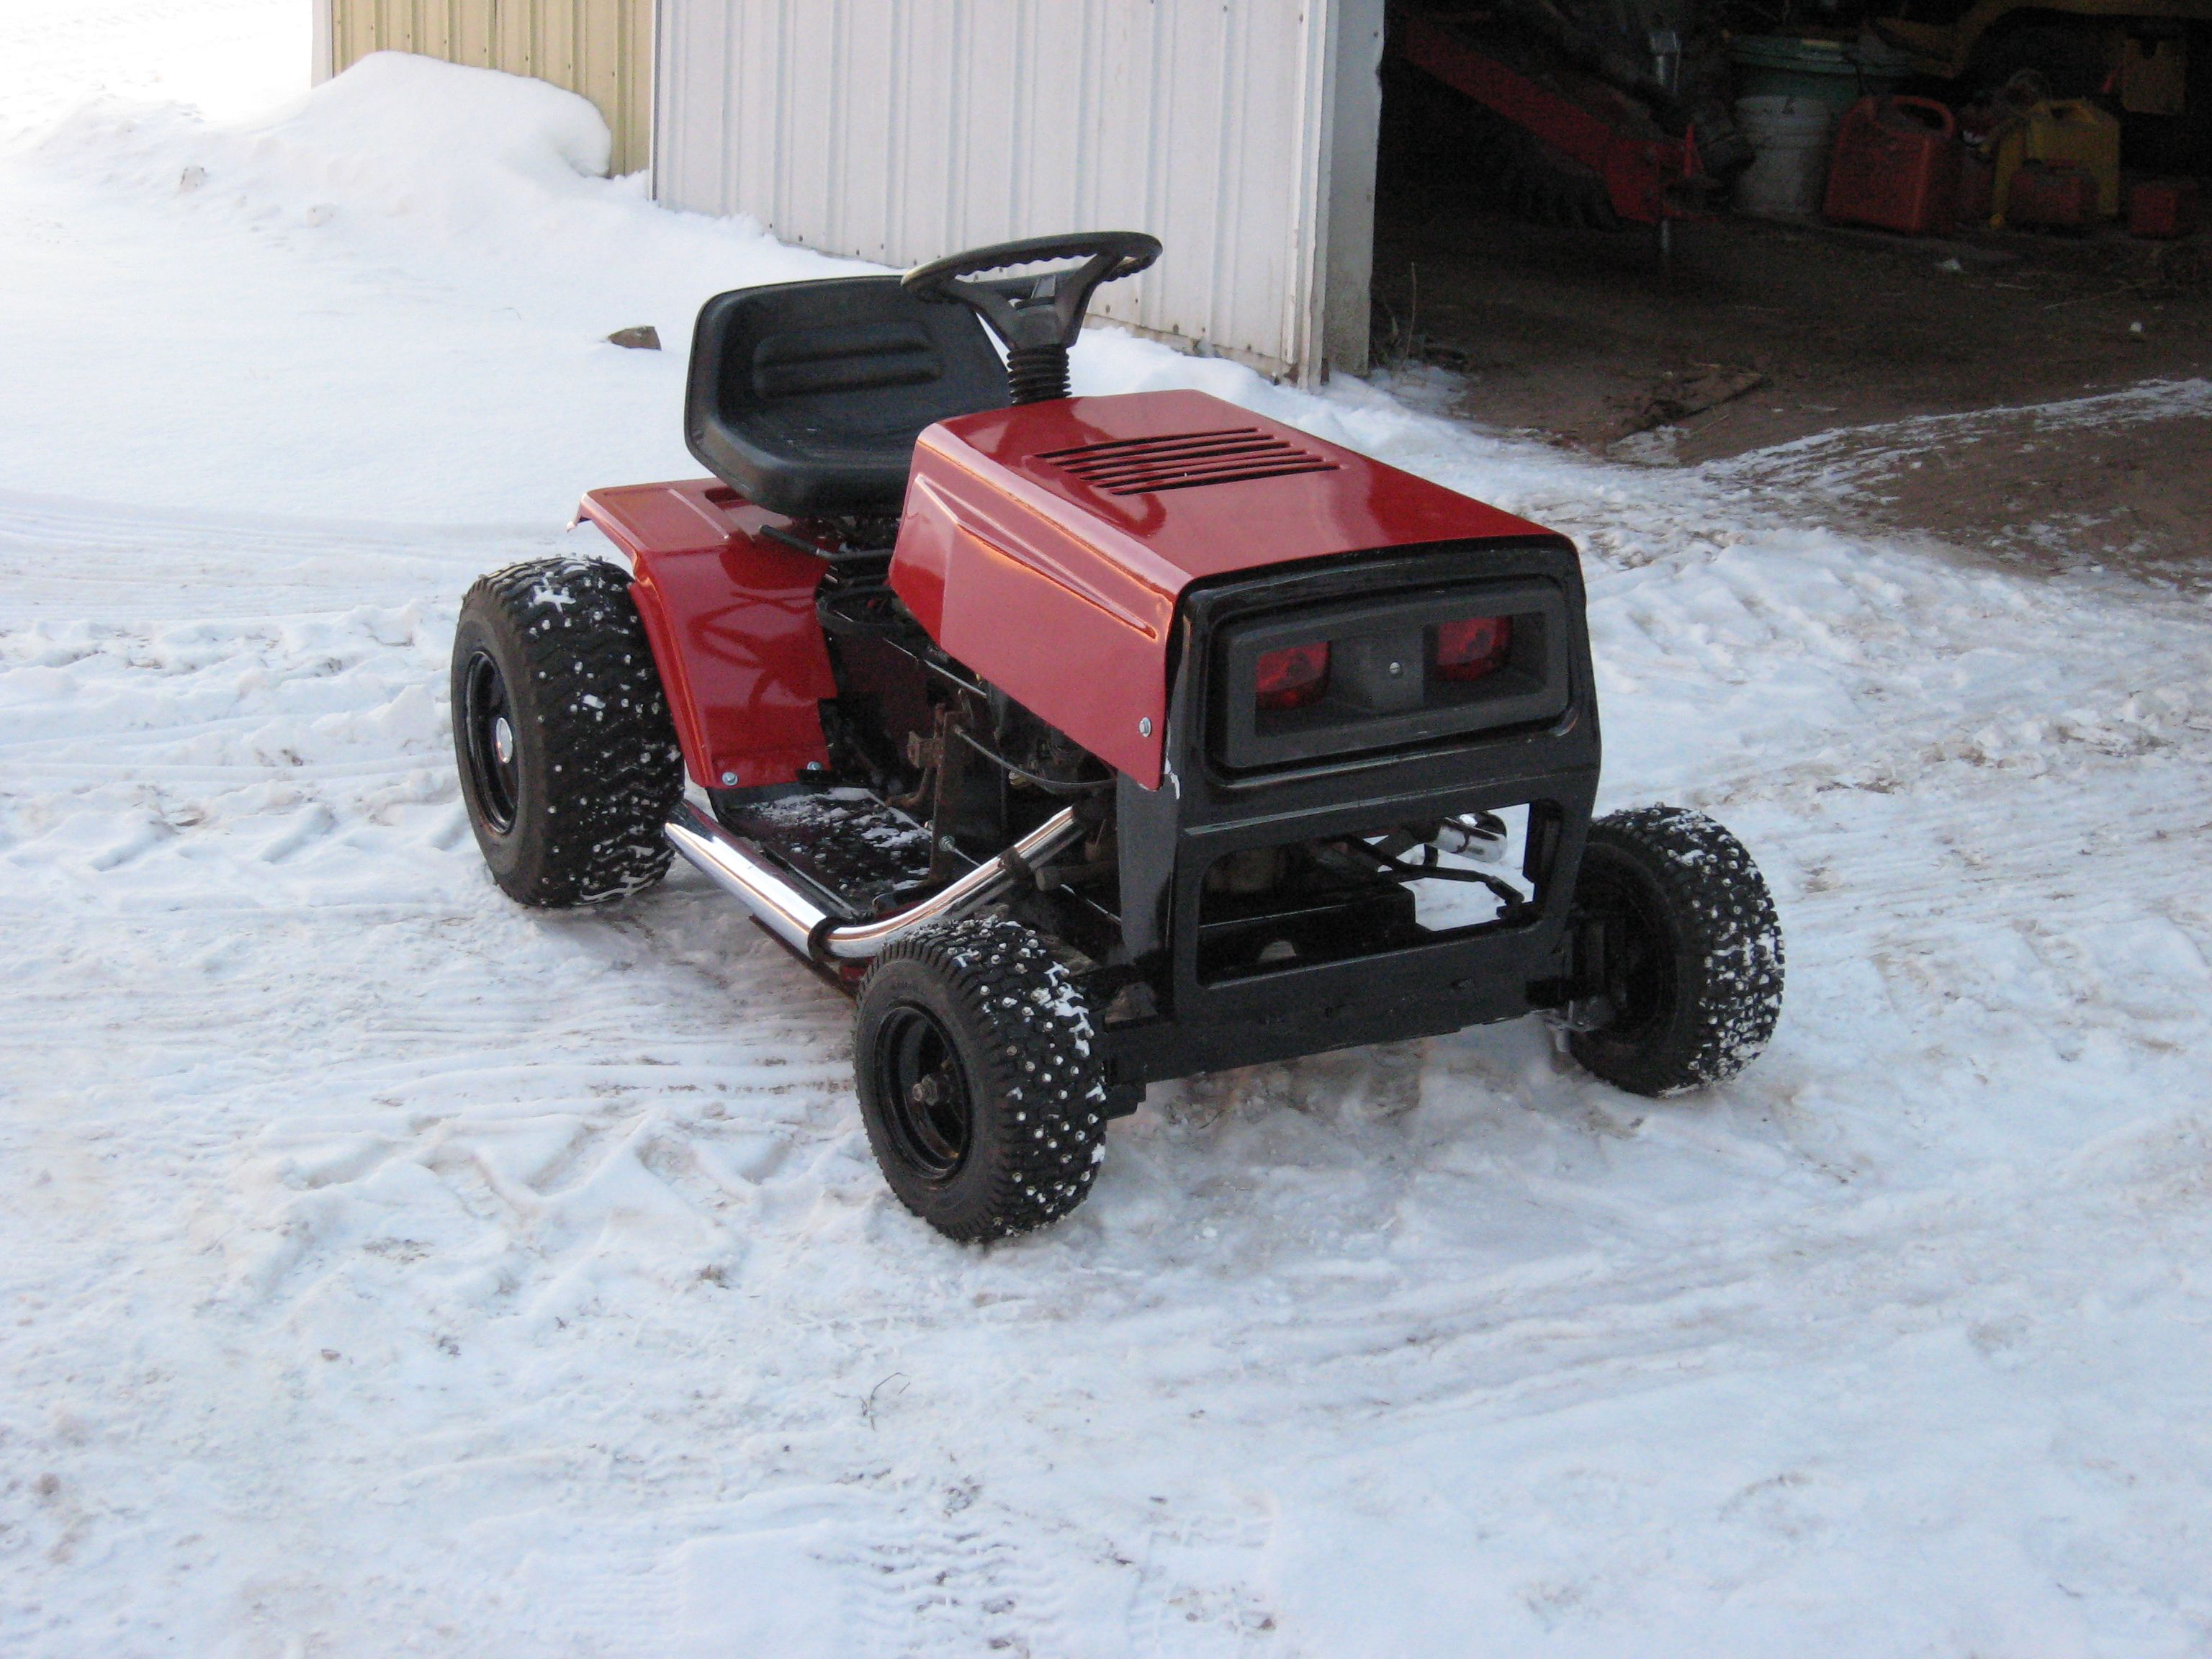 My Racing Lawn Mower After Getting Painted Builds